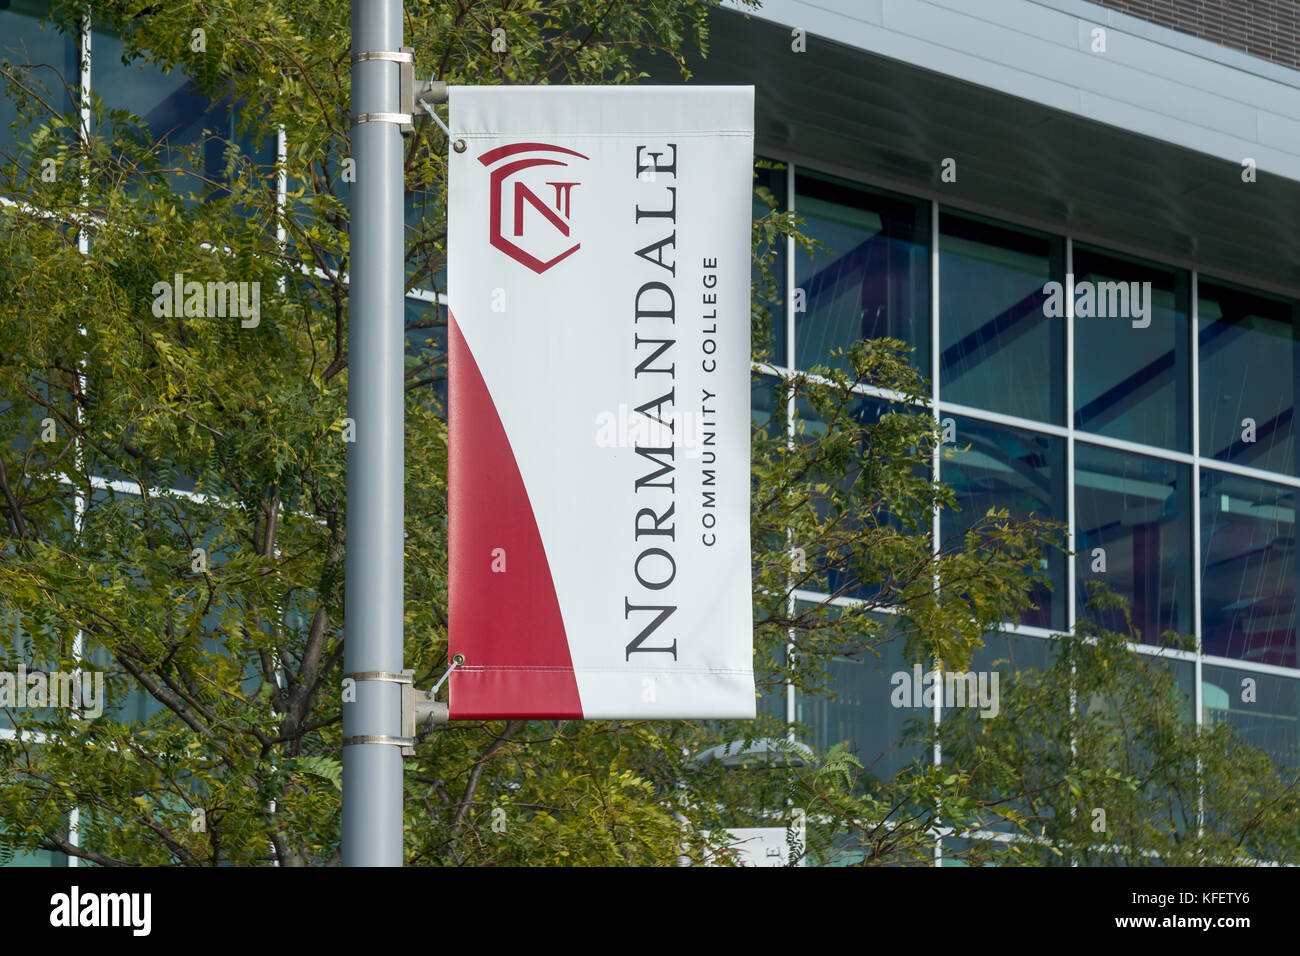 BLOOMINGTON, MN/USA - OCTOBER 15, 2017: Emblem and banner at Normandale Community College. - Stock Image